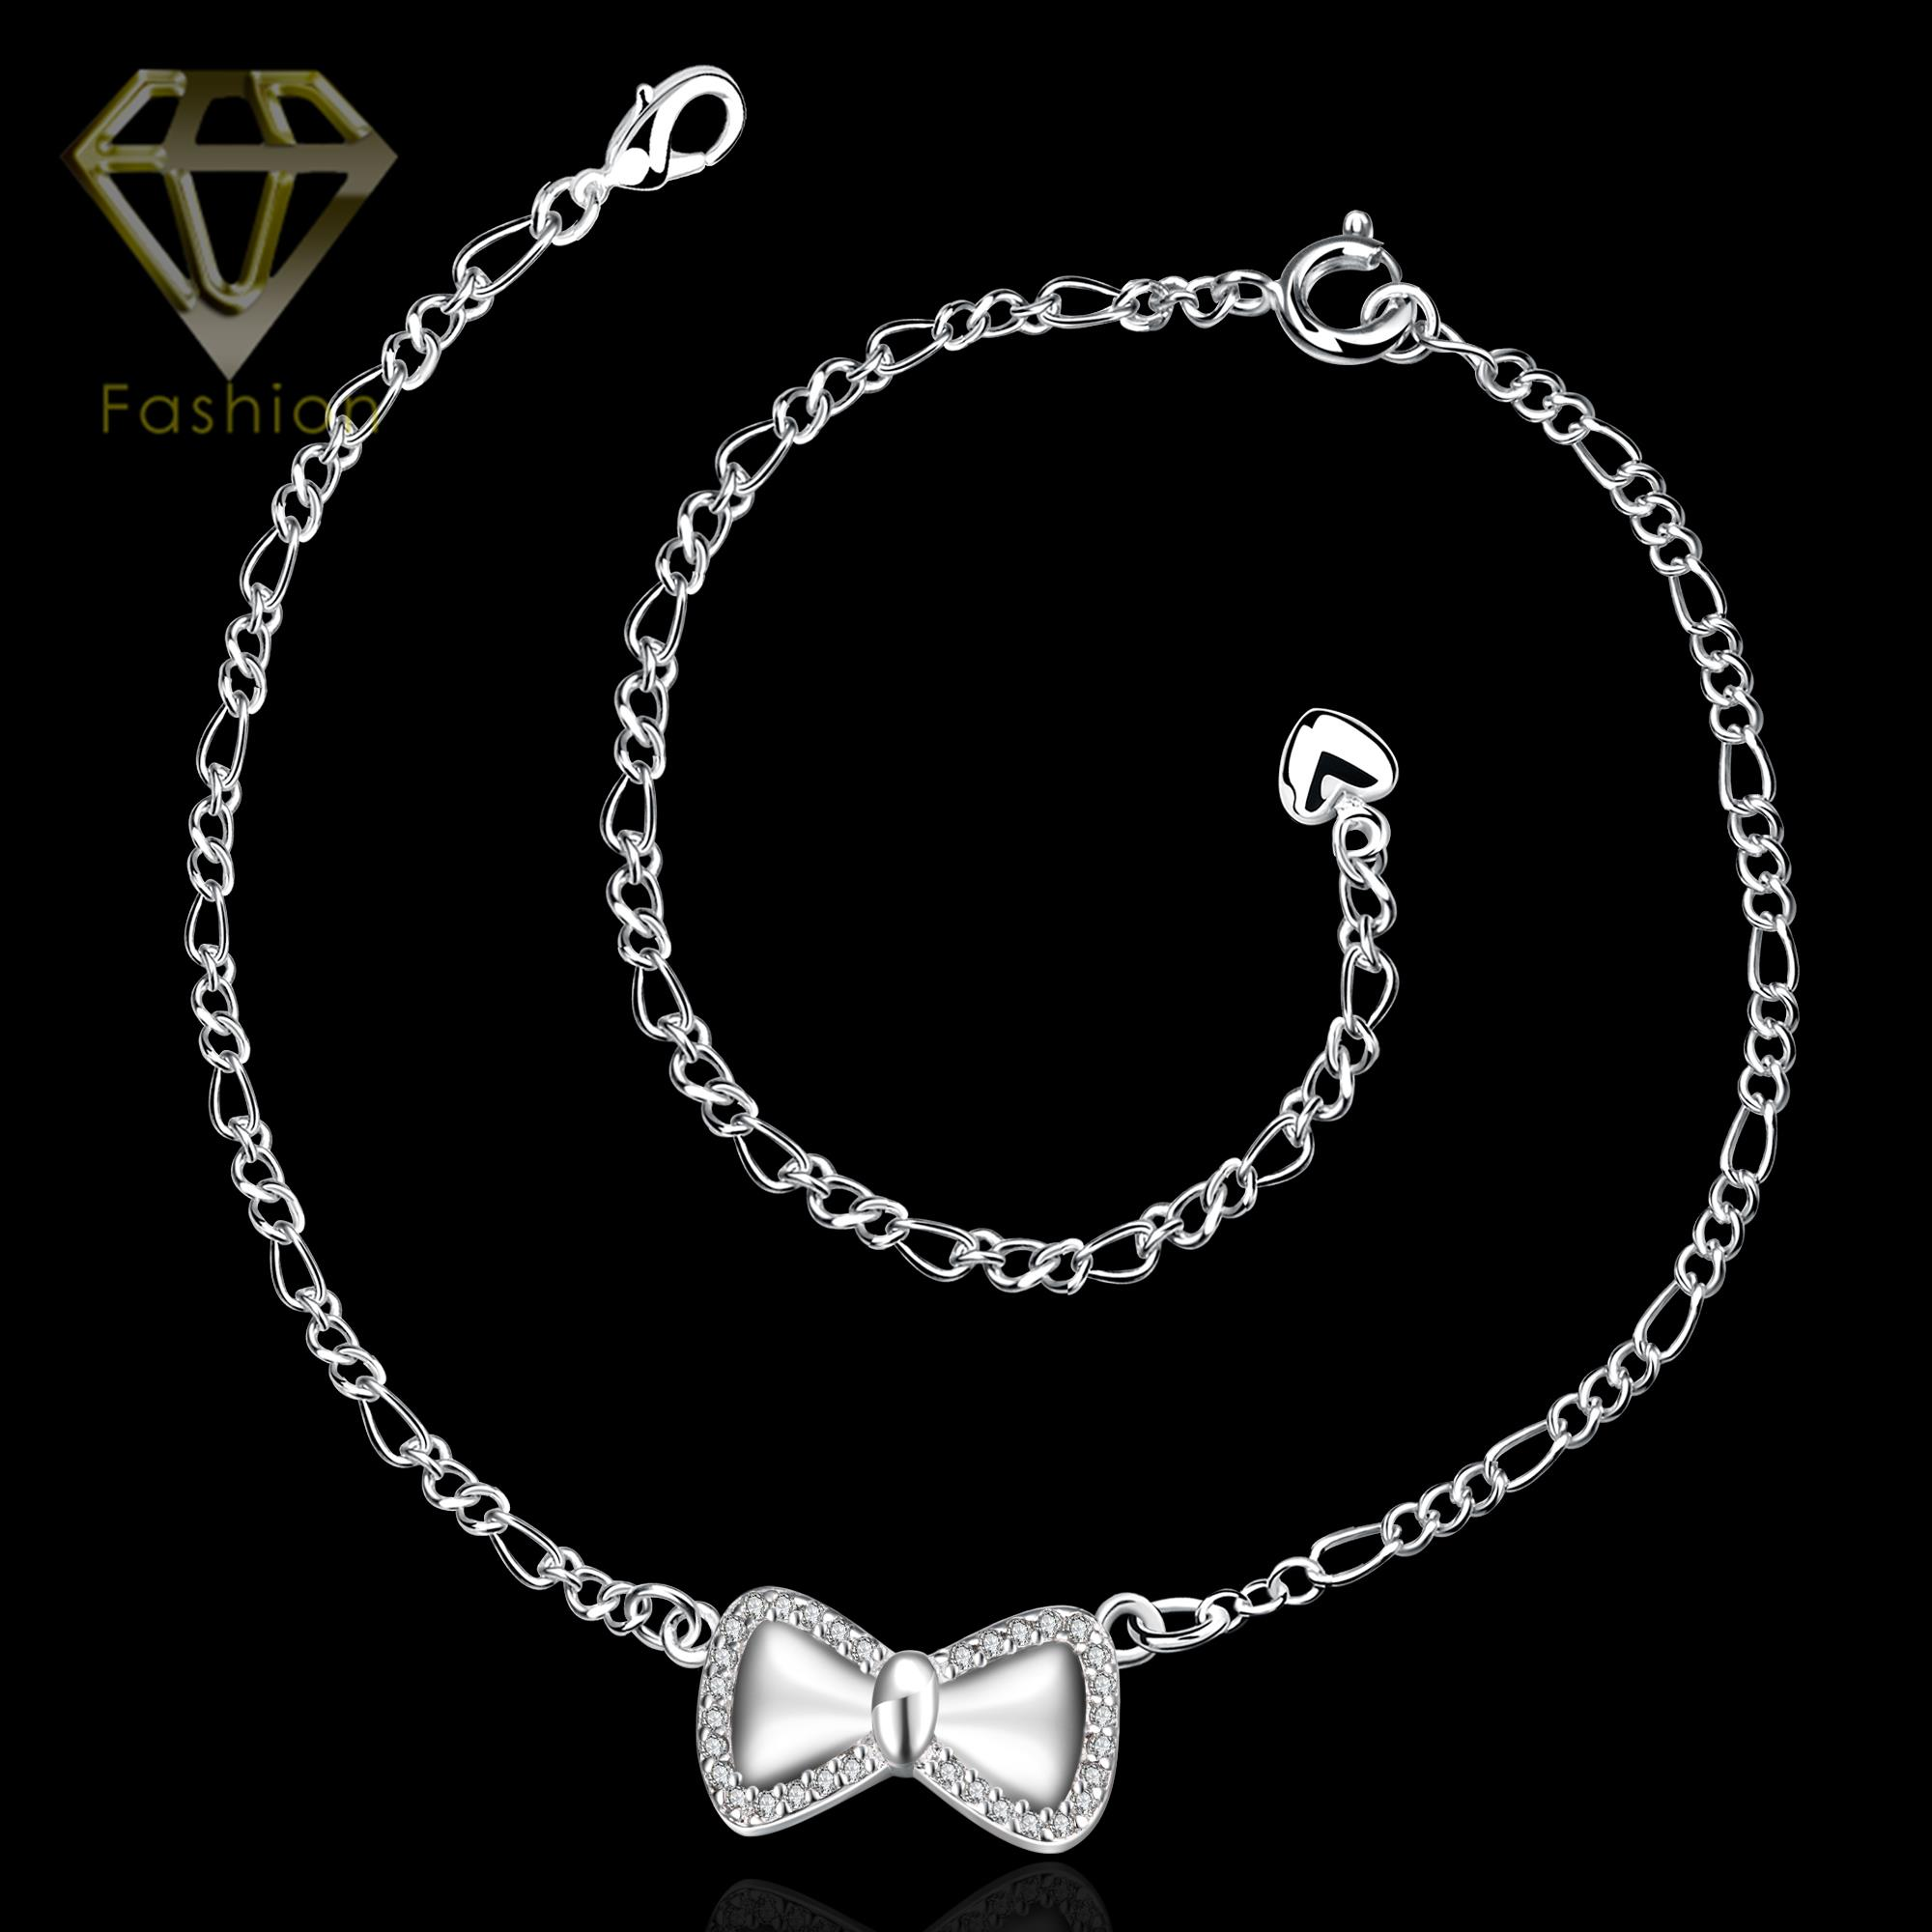 bracelet charms made kj cubic by silver cb is details bright sterling anklet clr clear entirely products six dancing features this thailand and teardrop handmade link from designed bracelets khun stone zirconia